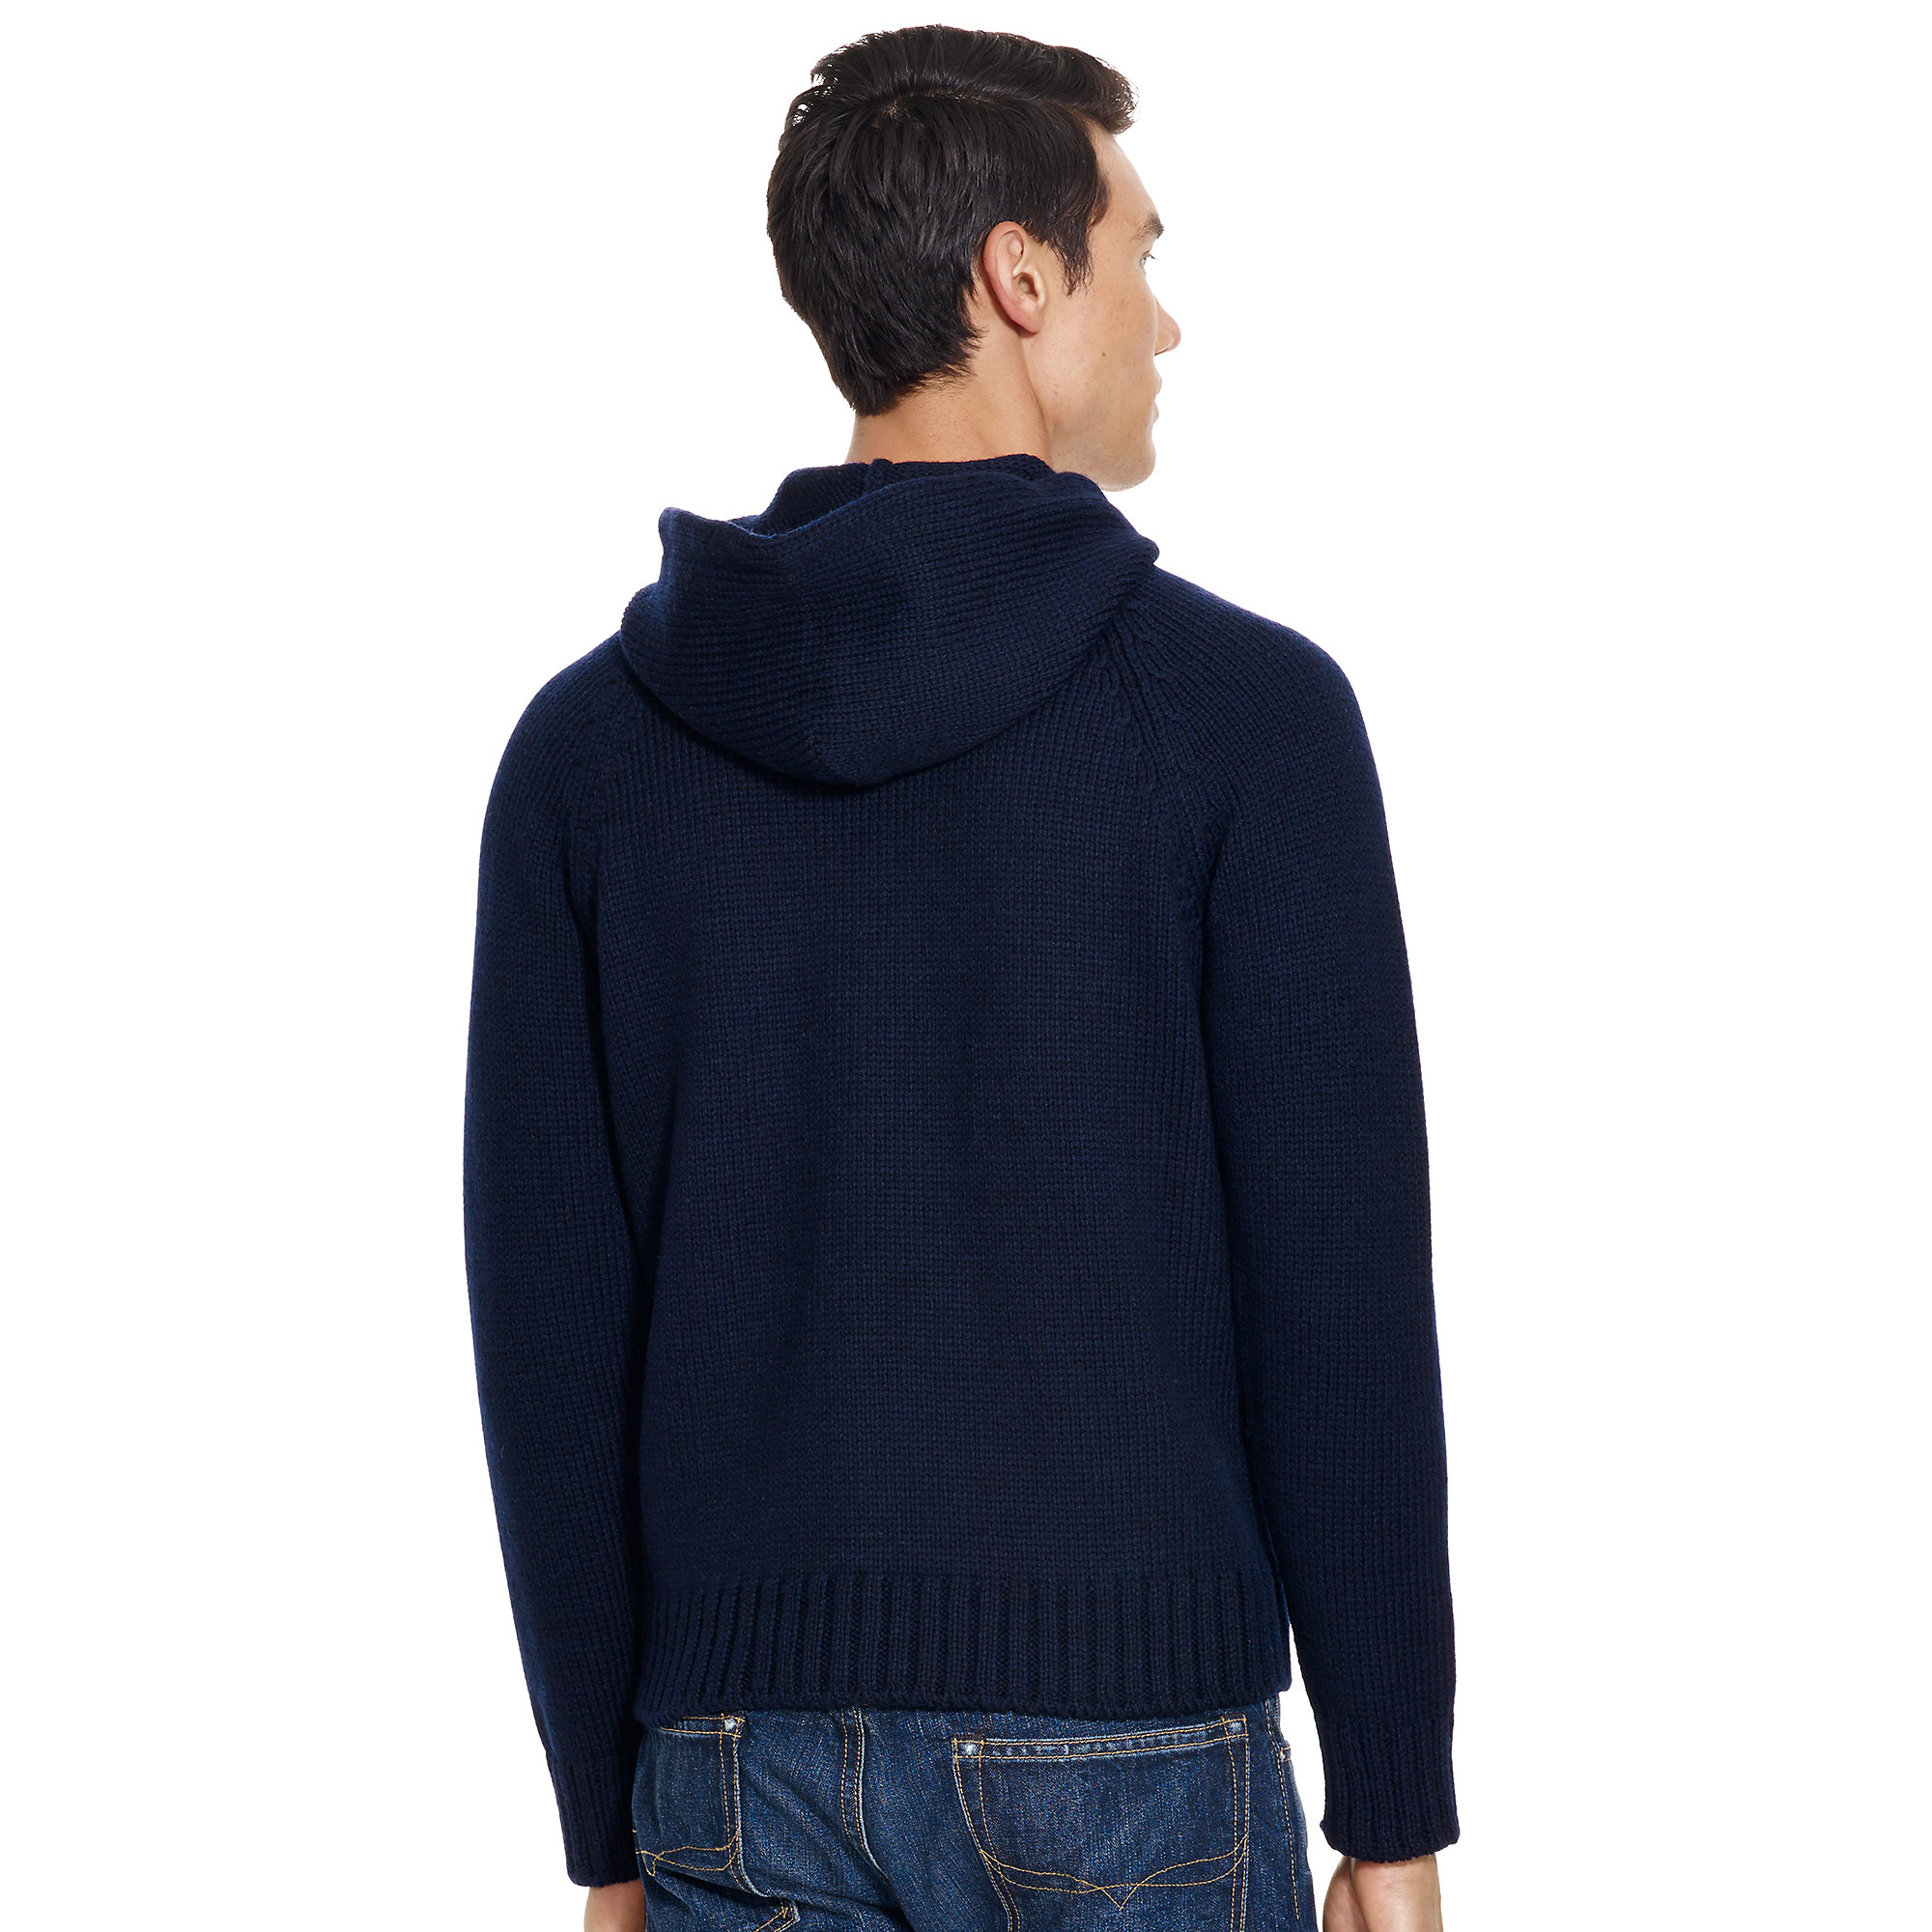 453f46df347 germany lyst polo ralph lauren flag wool hooded sweater in blue for men  edc6f 9ff4d